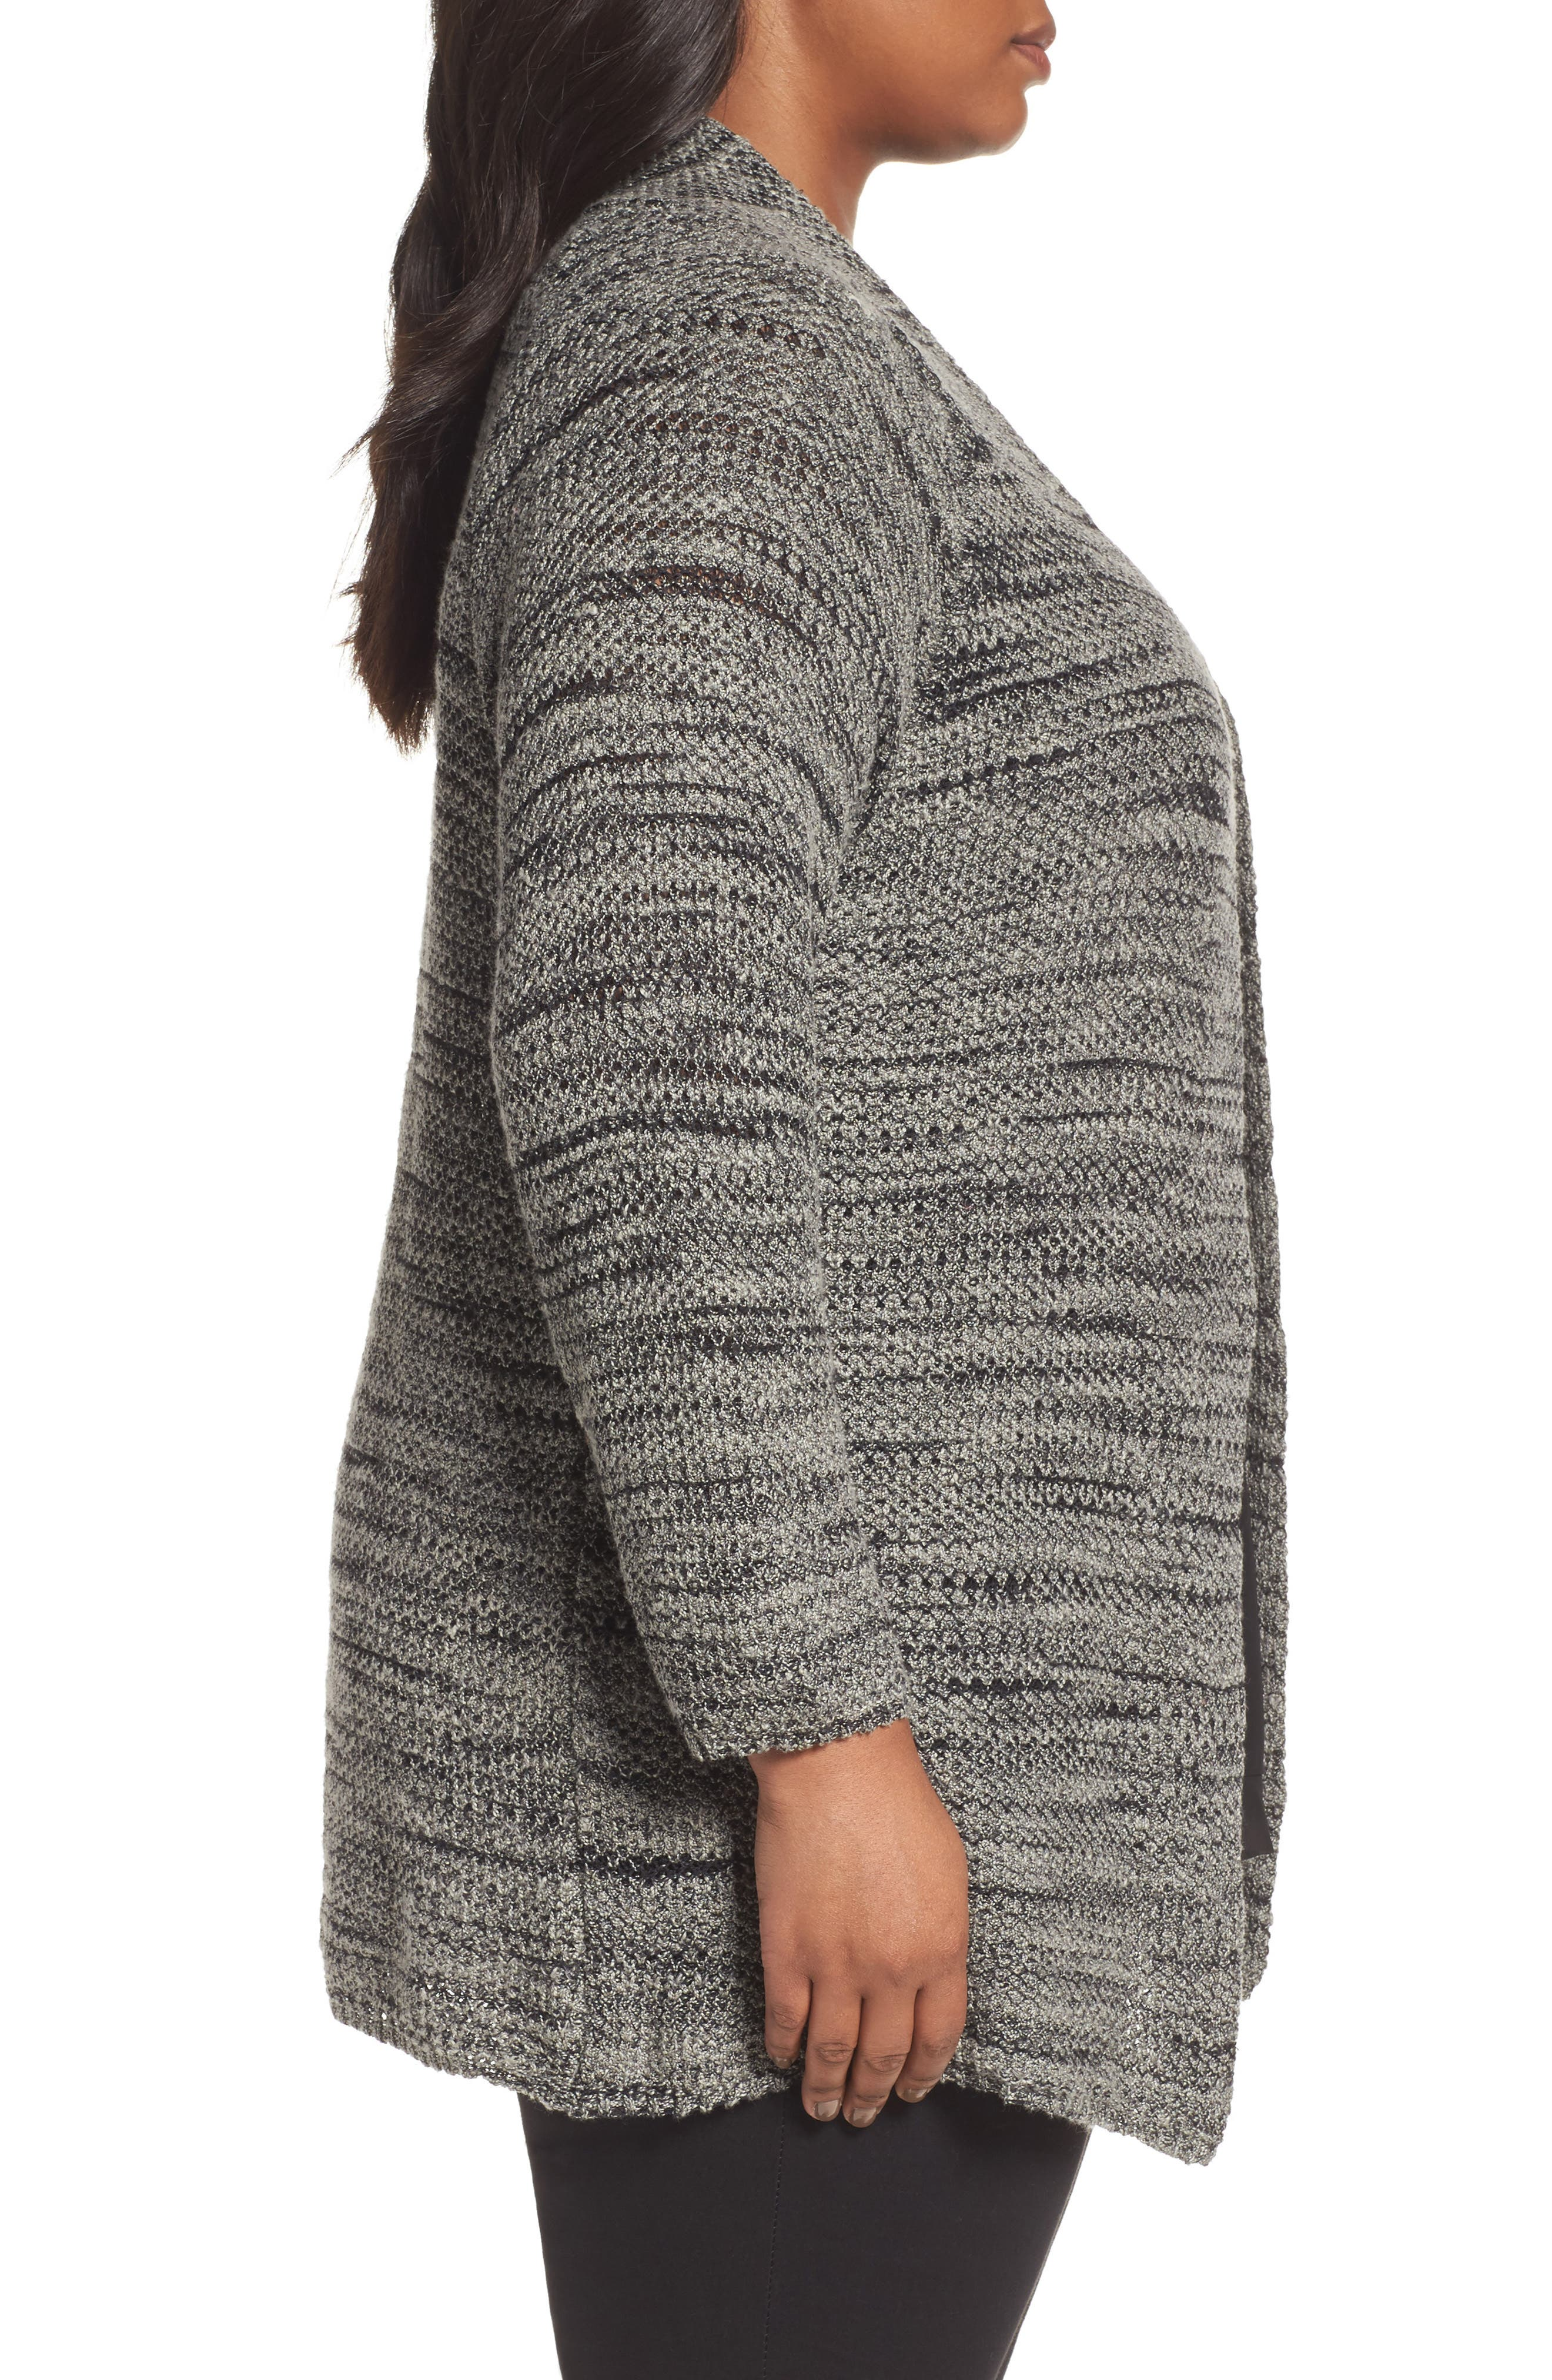 Thick & Thin Cardigan,                             Alternate thumbnail 3, color,                             Lichen